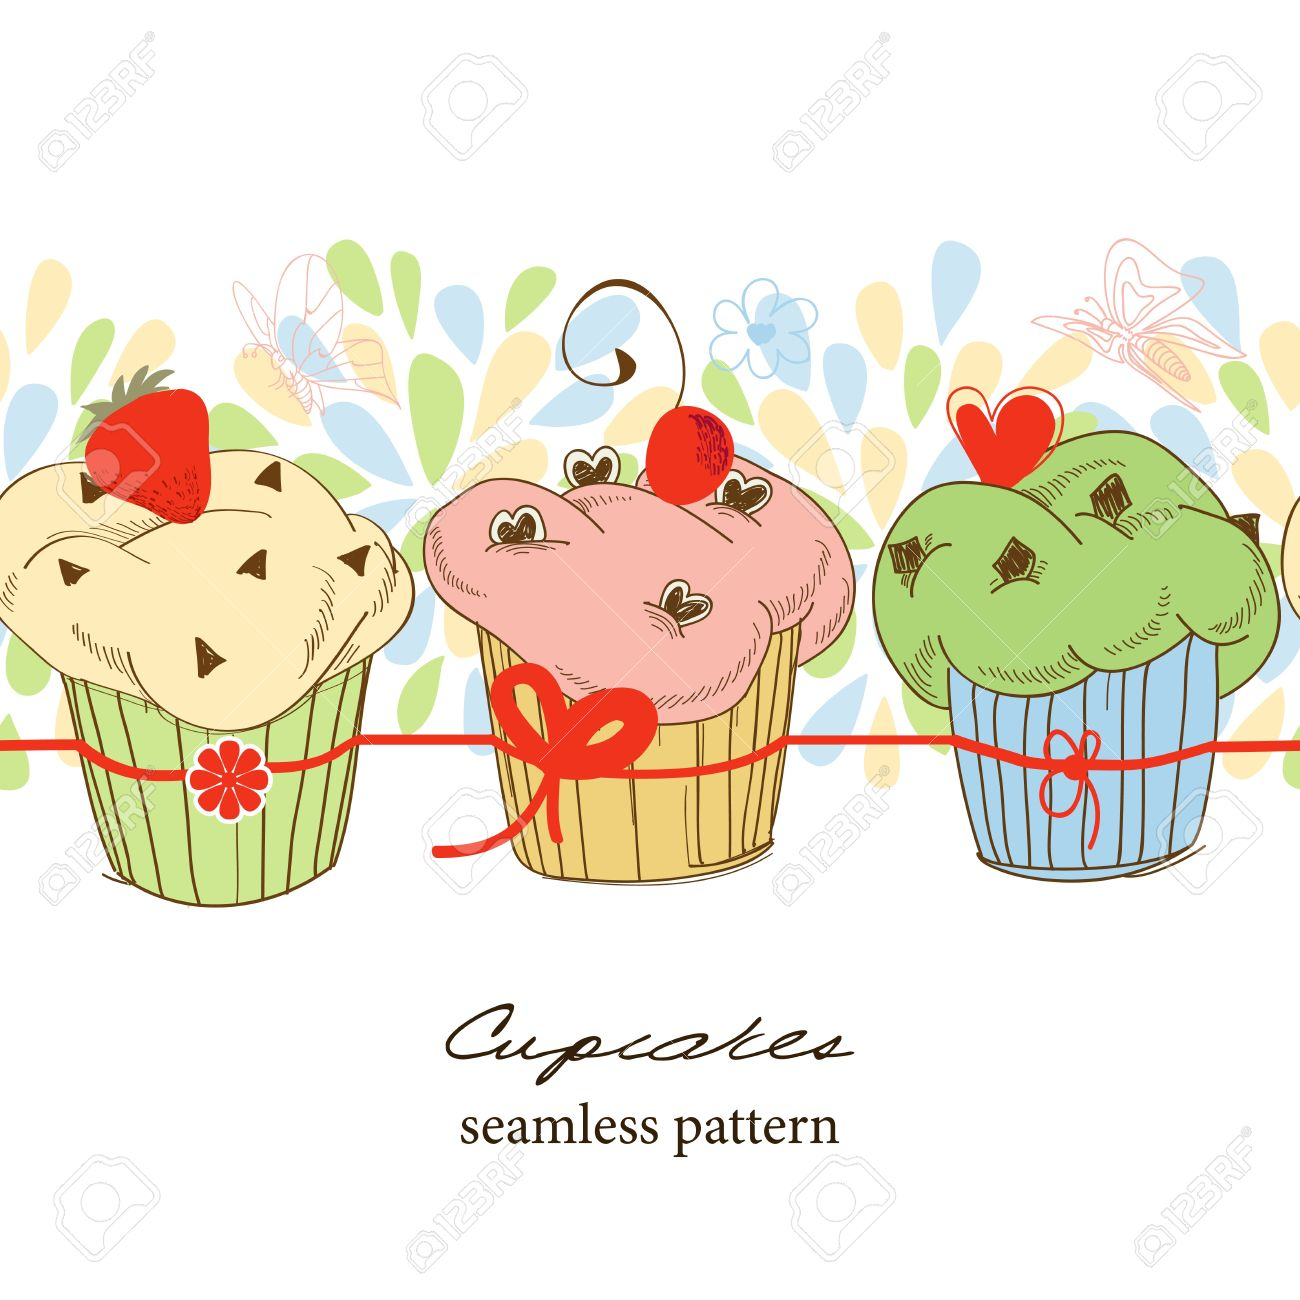 Row of cupcakes clipart picture freeuse stock Cute Fruit Cupcakes Seamless Pattern Royalty Free Cliparts ... picture freeuse stock